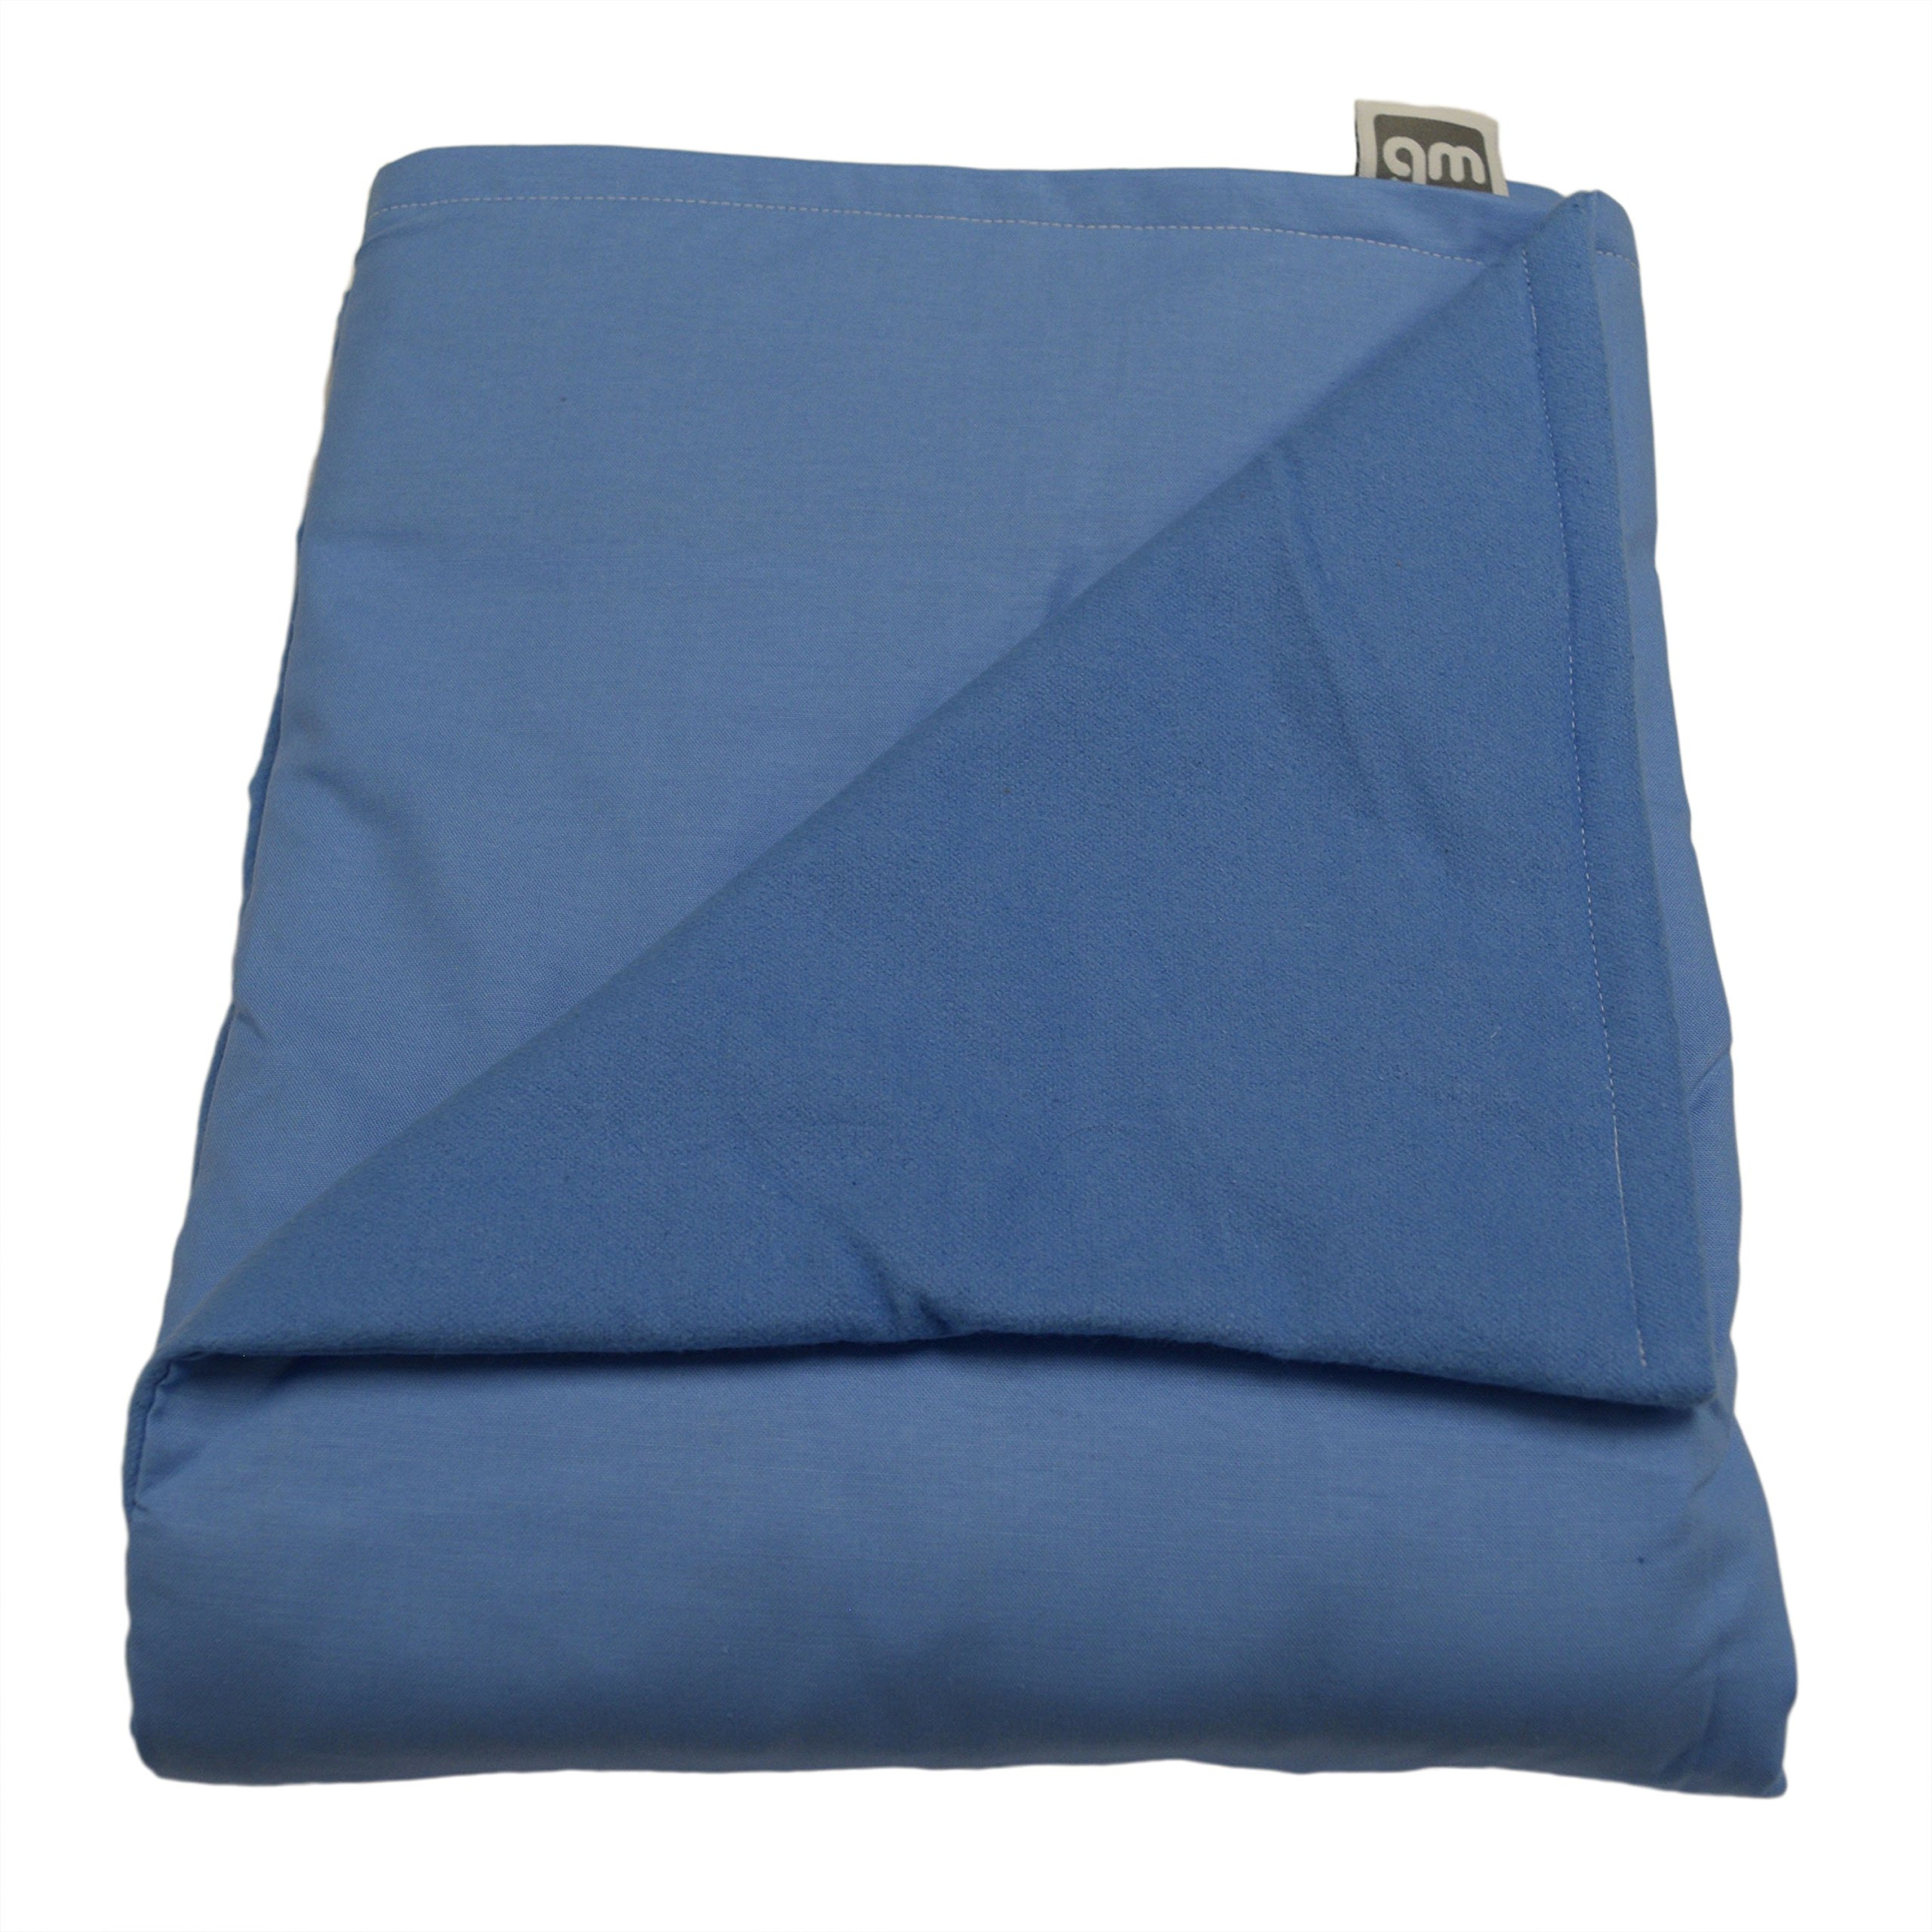 WEIGHTED BLANKETS PLUS LLC - Made in America - Child Deluxe Small Weighted Blanket - Light Blue - Cotton/Flannel (52'' L x 40'' W) 7lb HIGH Pressure.